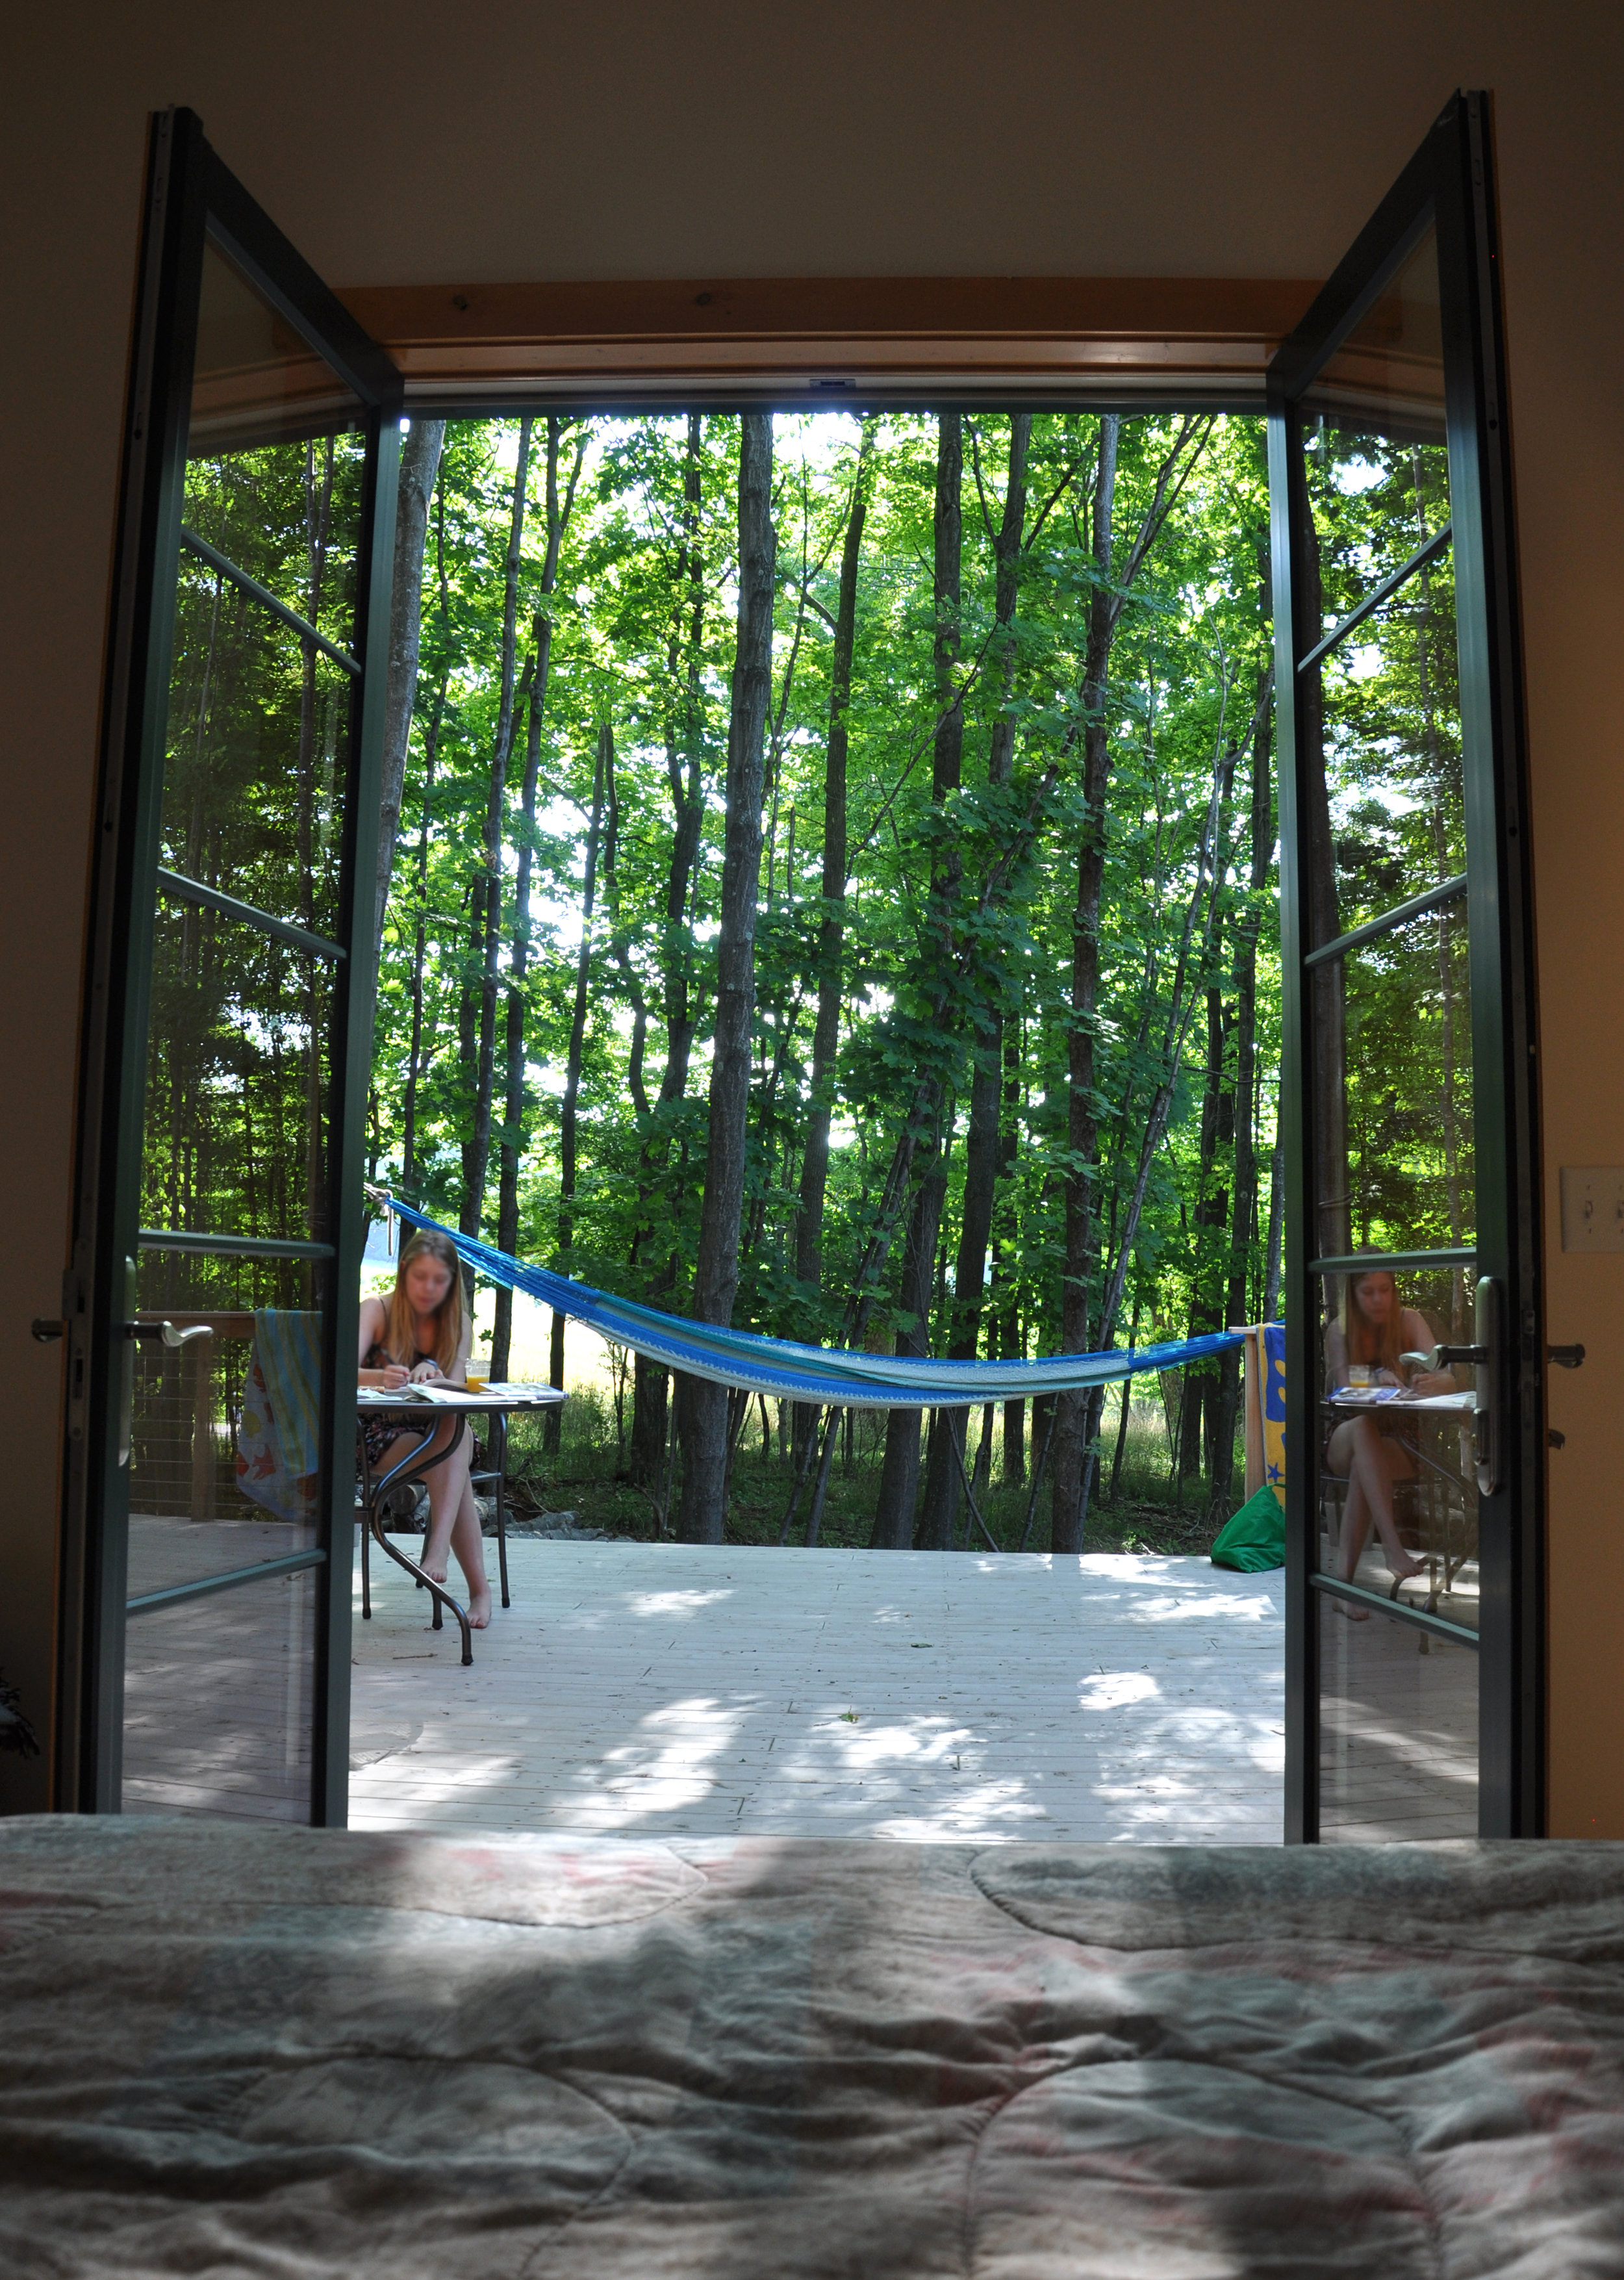 view from master bed out french doors to patio with hammock and table, green trees, forest